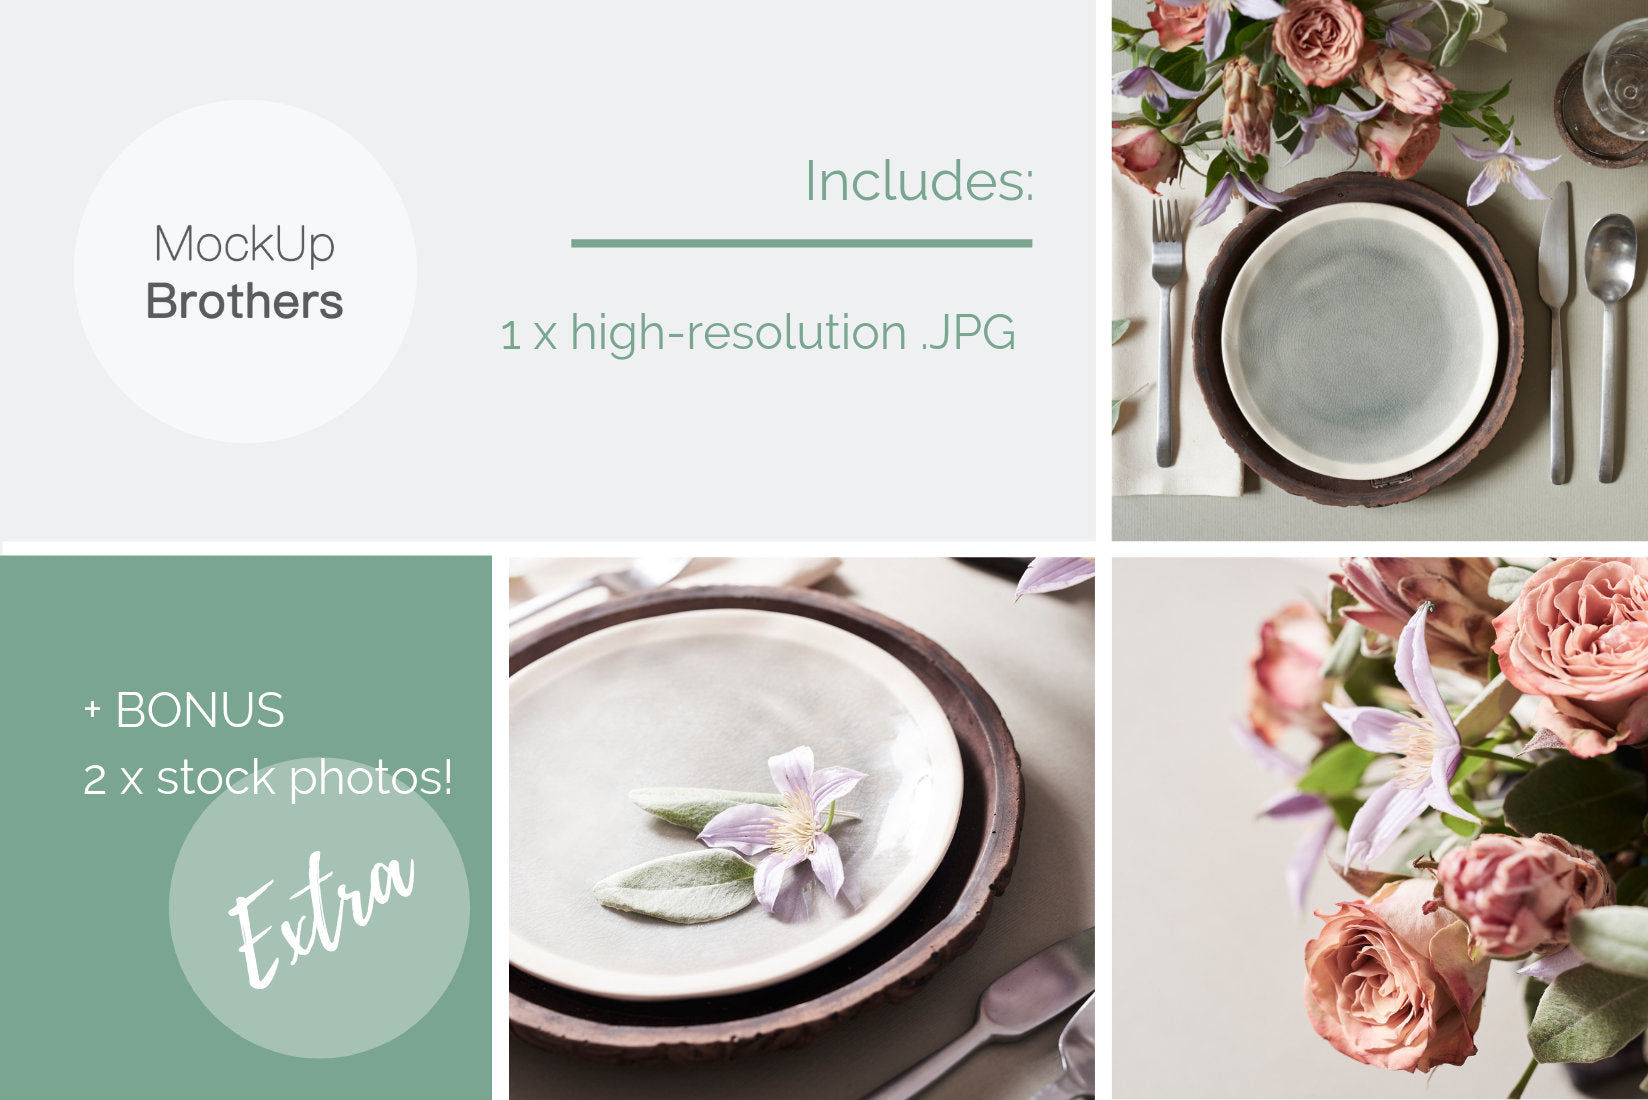 Wedding menu mockup W04_02